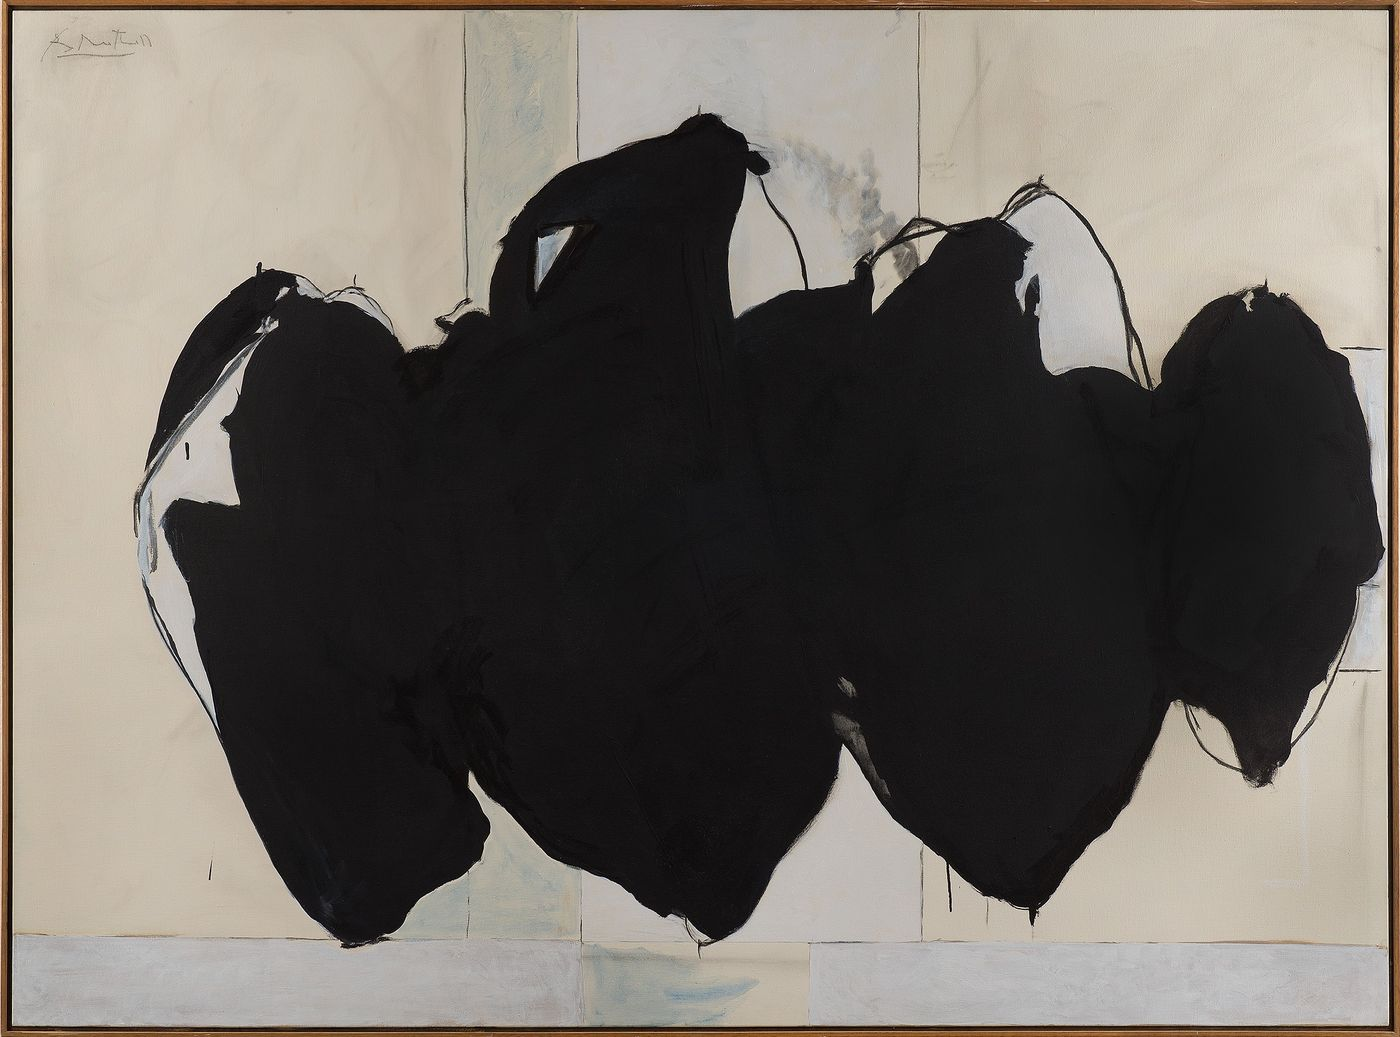 PHILLIPS : First Reveal: Robert Motherwell On View at the Box